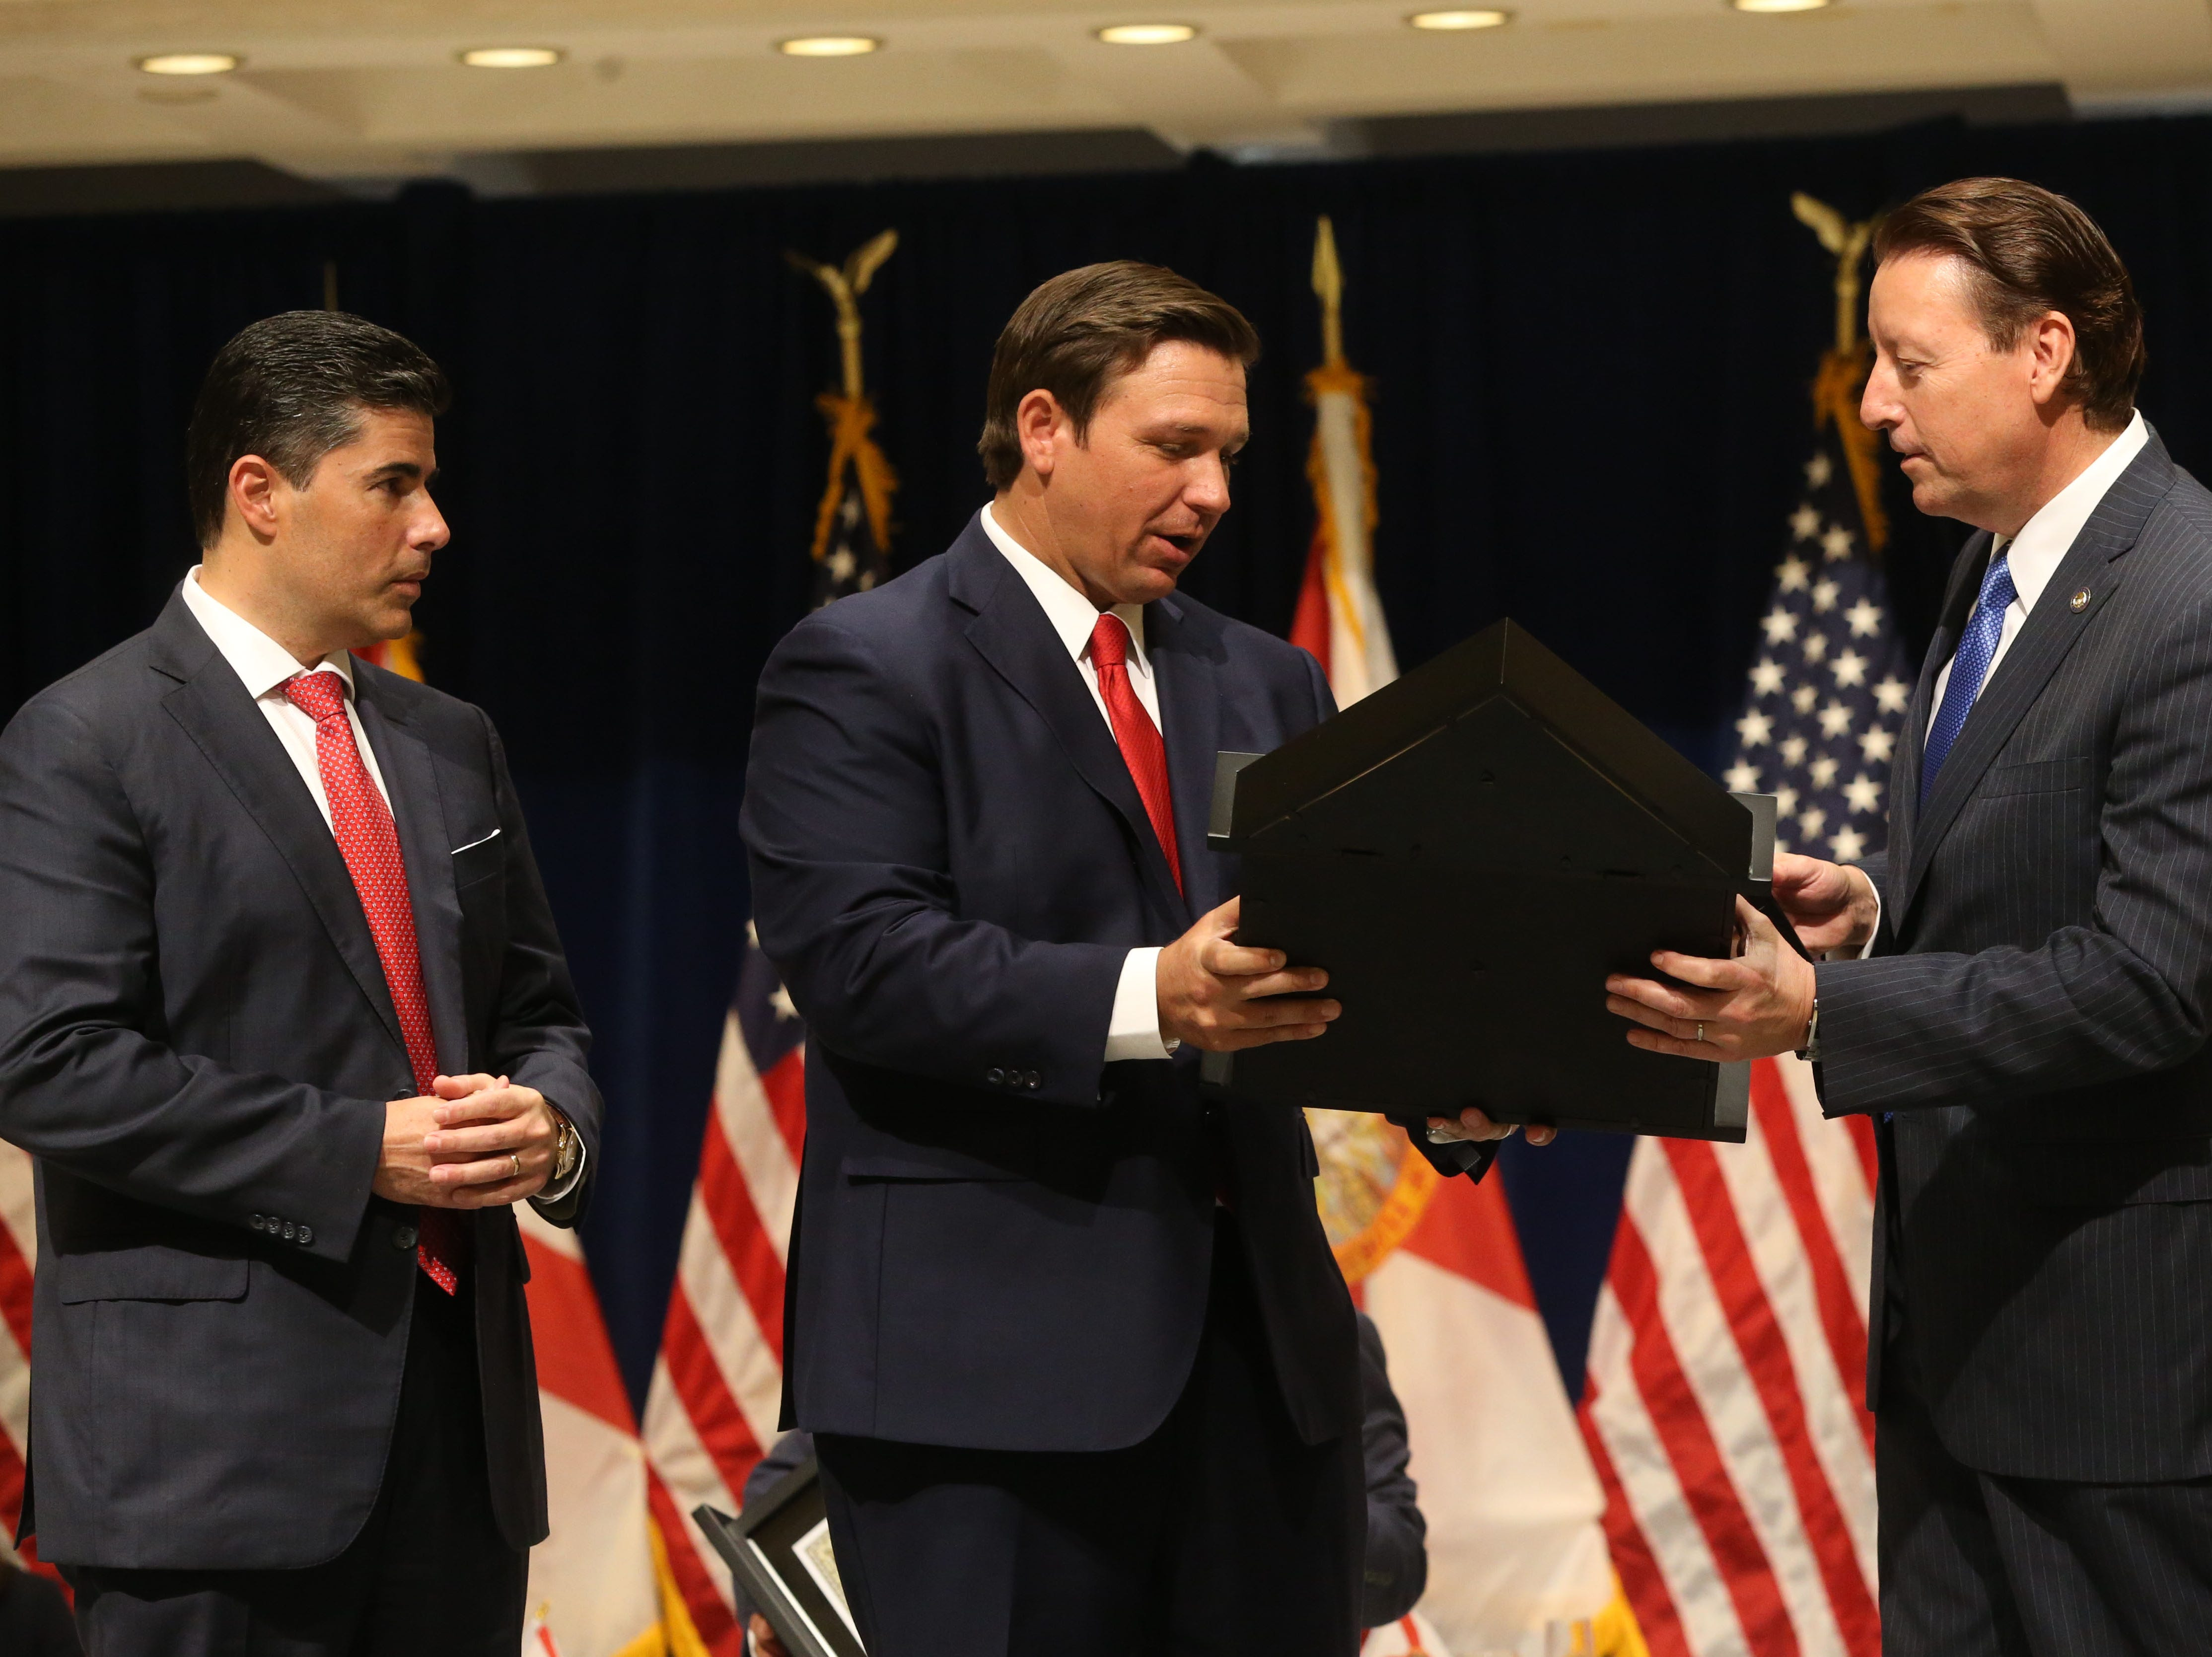 For the first time in Inaugural history, Gov. Ron DeSantis addresses FloridaÕs Legislative leaders and Cabinet officials. DeSantis discusses his plans to work with our stateÕs elected leaders to achieve a Bold Vision for a Brighter Future, Tuesday, Jan. 8, 2019. Gov. Ron DeSantis, center, gives a flag that was flown during the inauguration earlier in the morning to Senate President Bill Galvano, right, and House Speaker Jose Oliva, left.